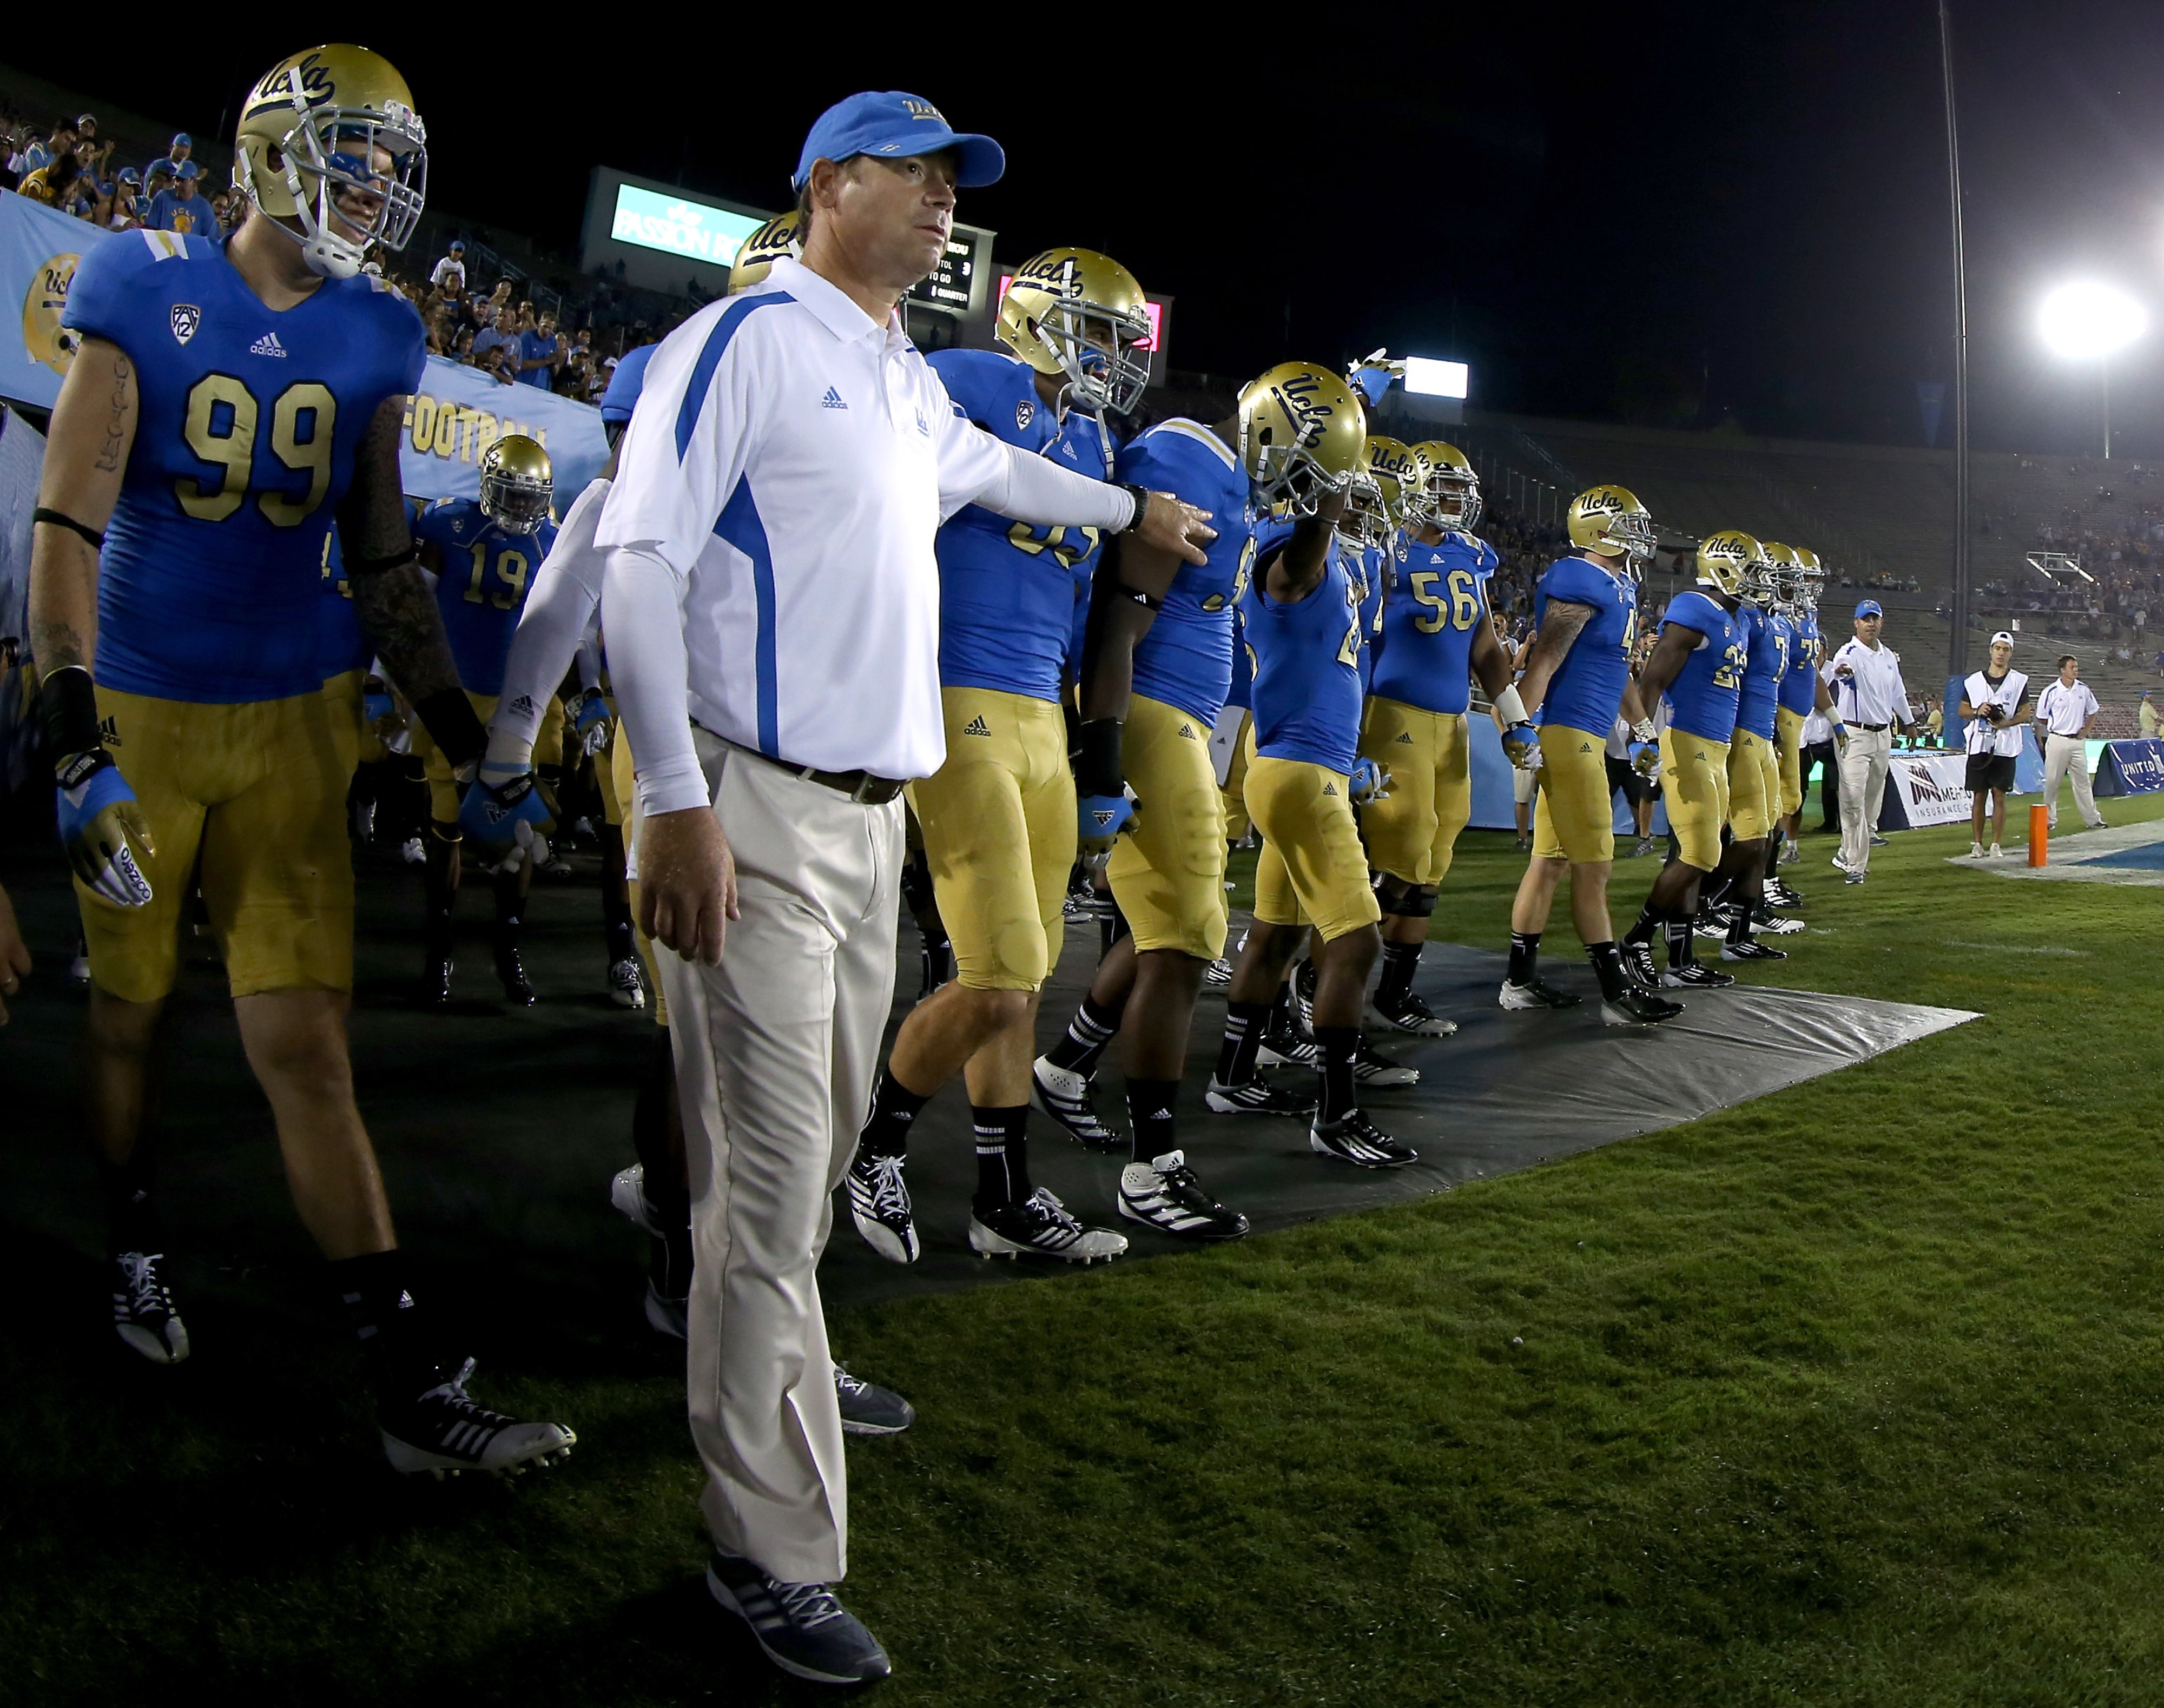 Mora needs to close out the 2012 season with a win.